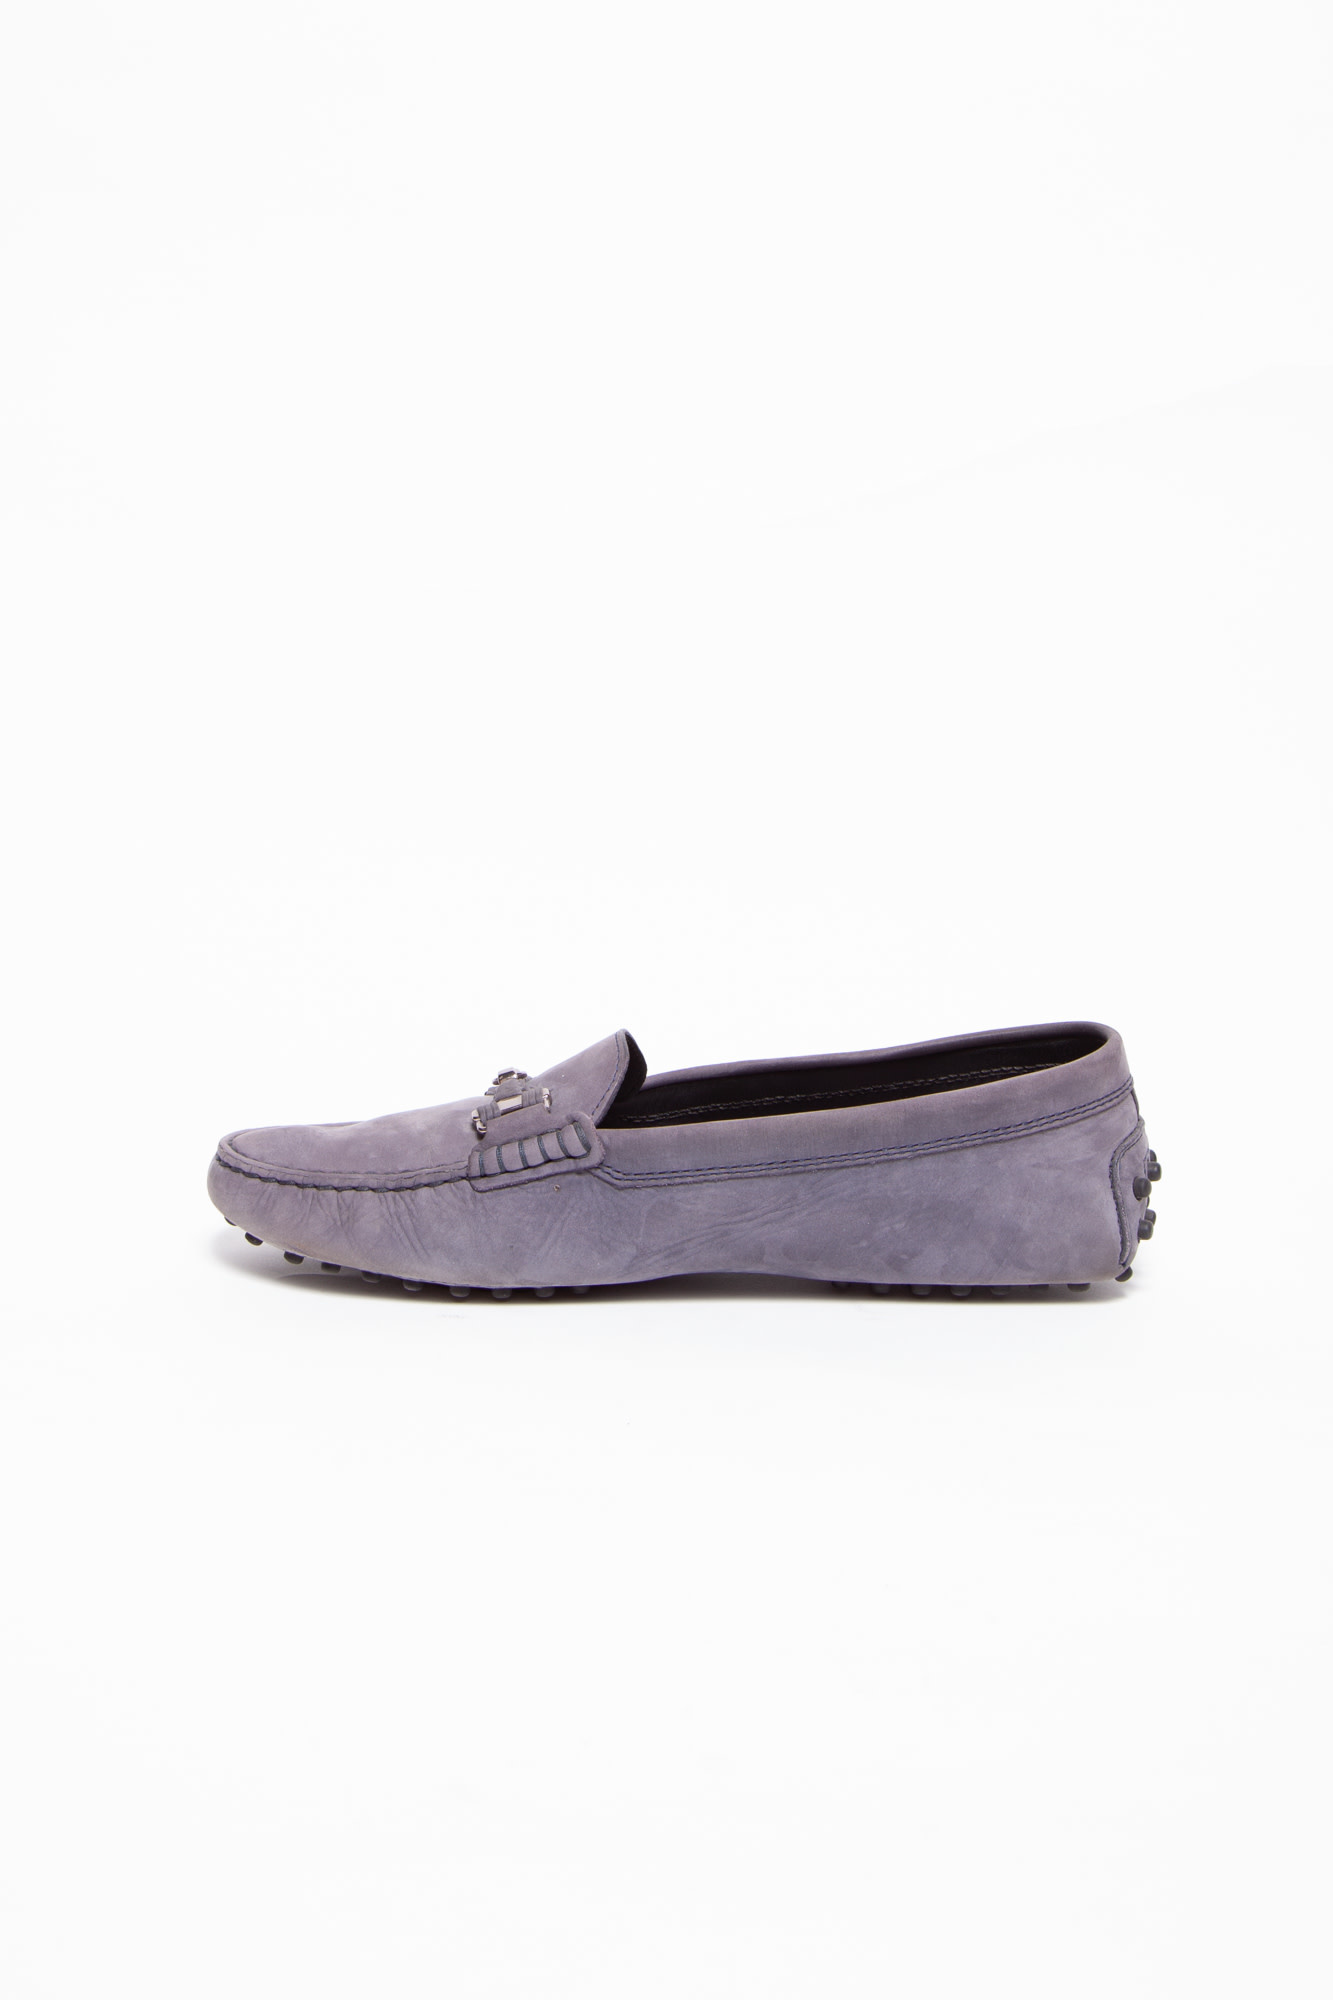 TOD'S GREY GOMMINO DRIVING SHOES